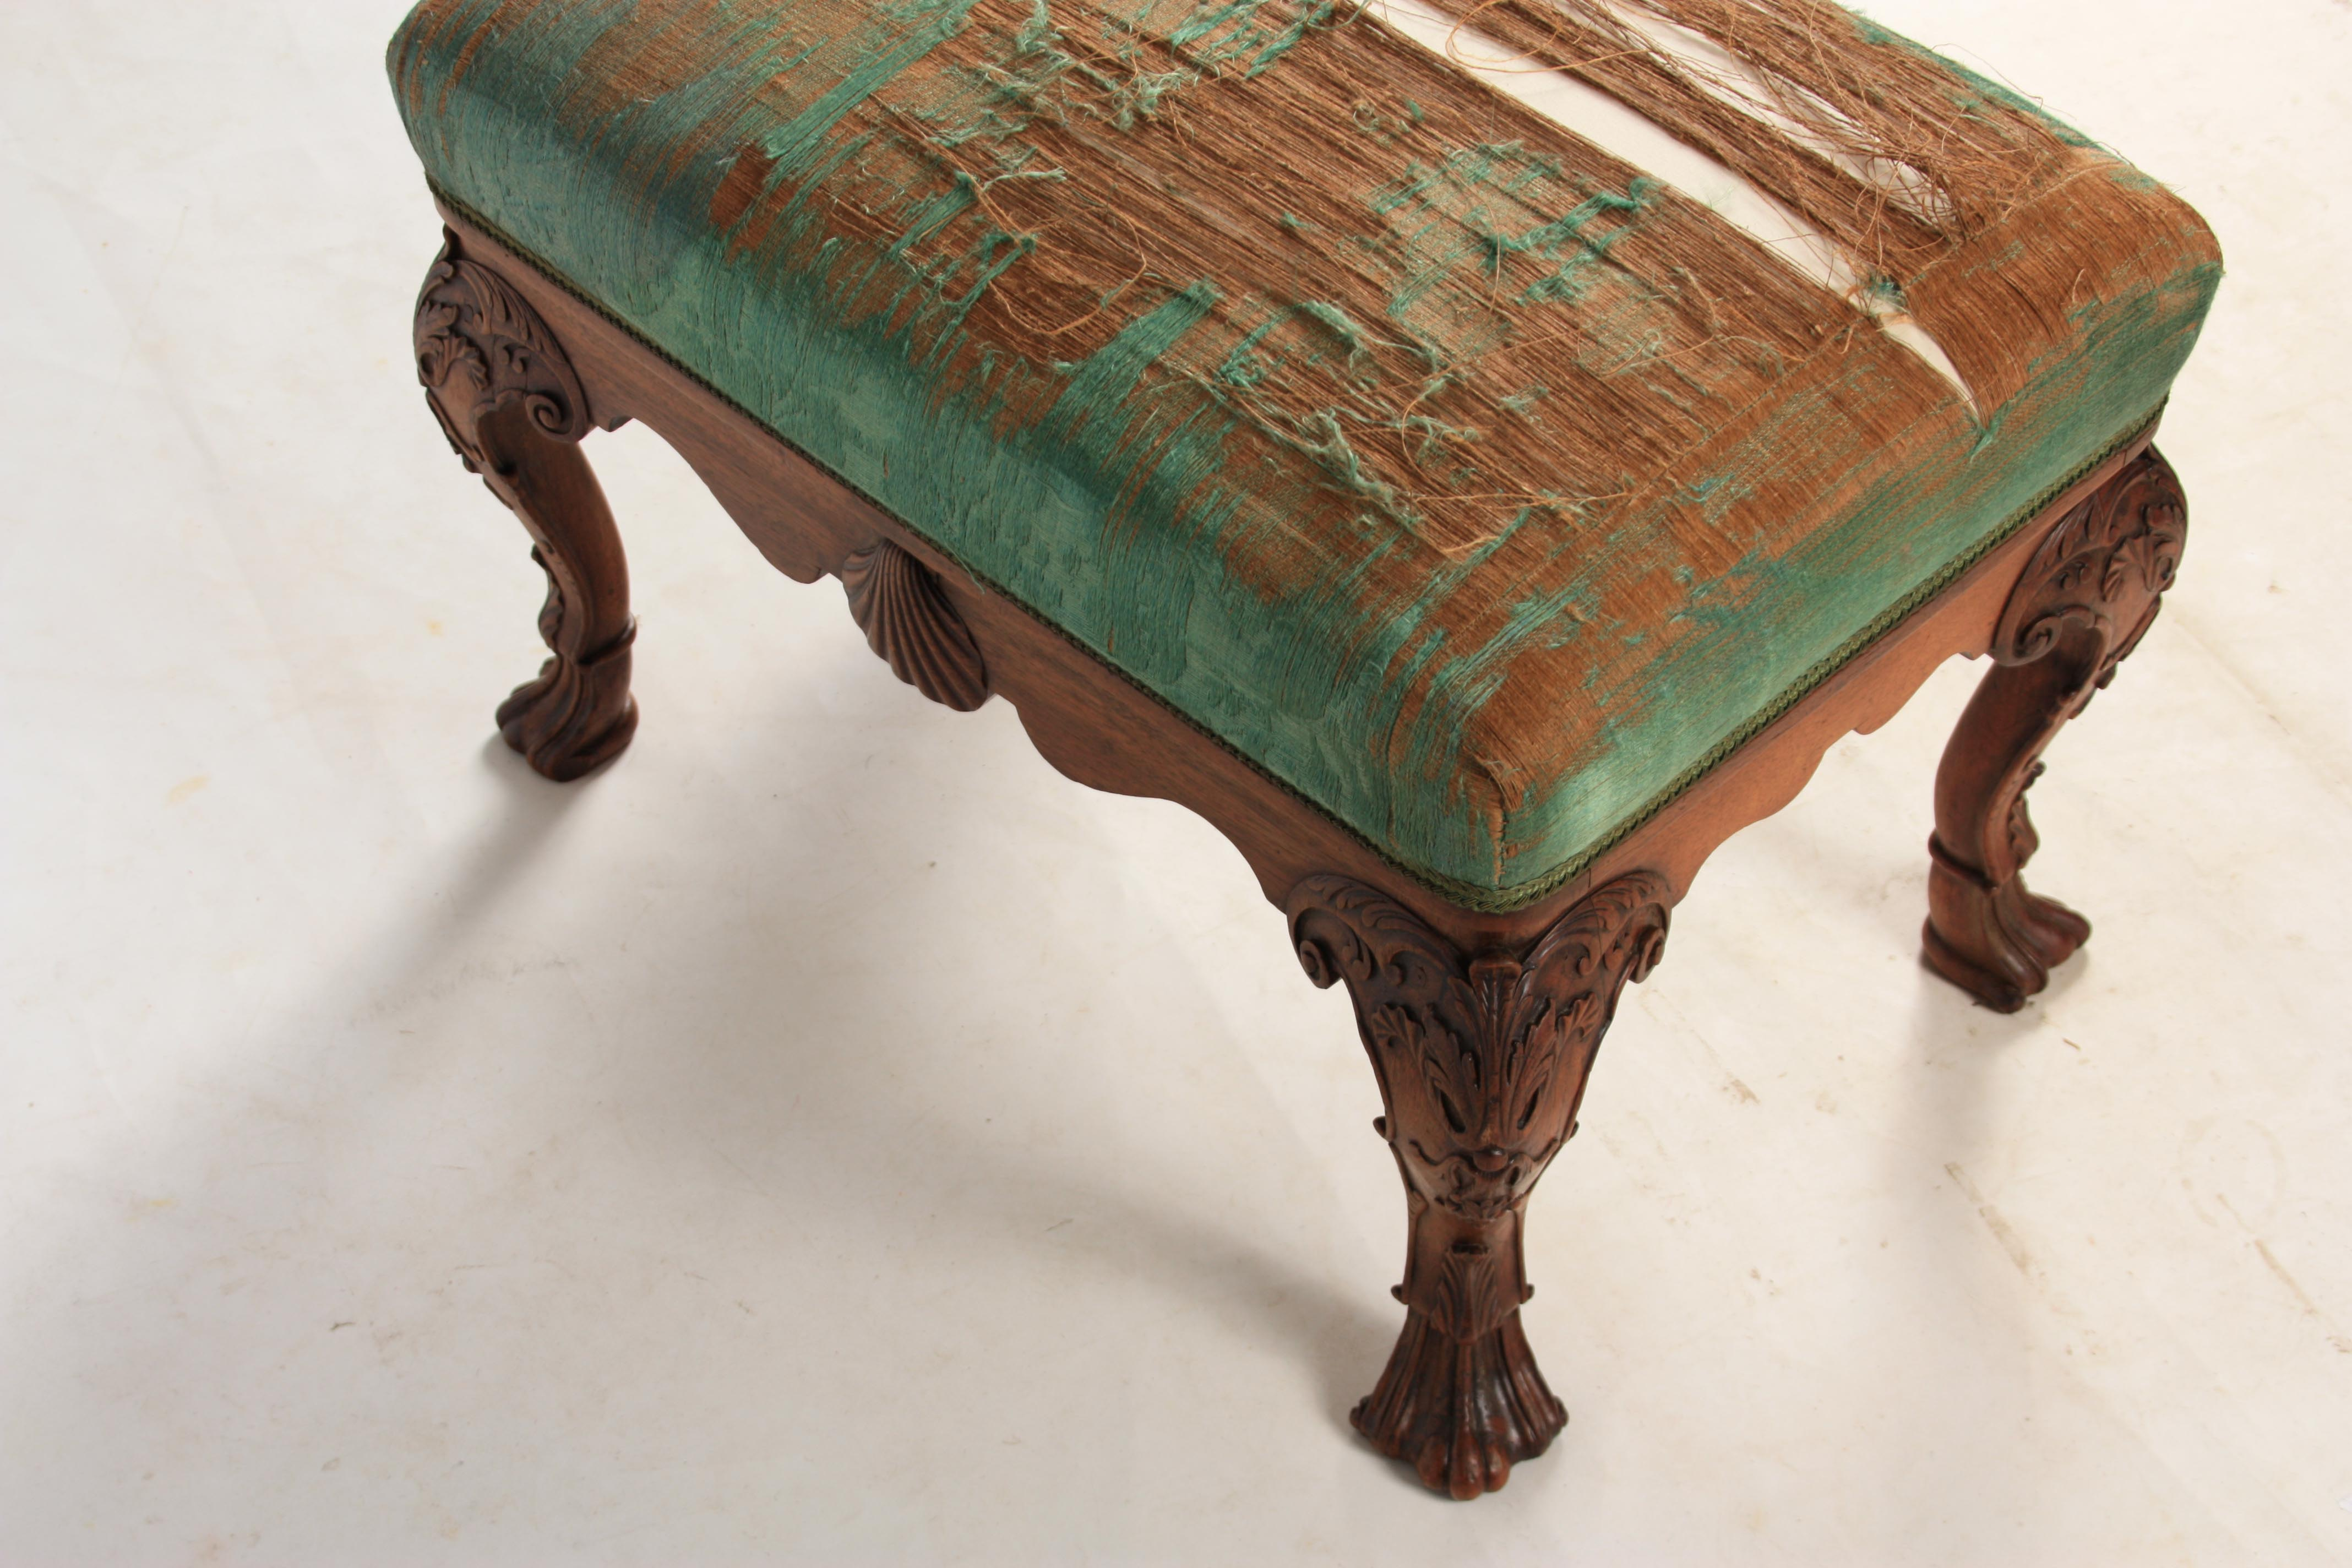 A MID 18TH CENTURY IRISH STYLE MAHOGANY DRESSING TABLE STOOL with upholstered top above shaped rails - Image 6 of 7